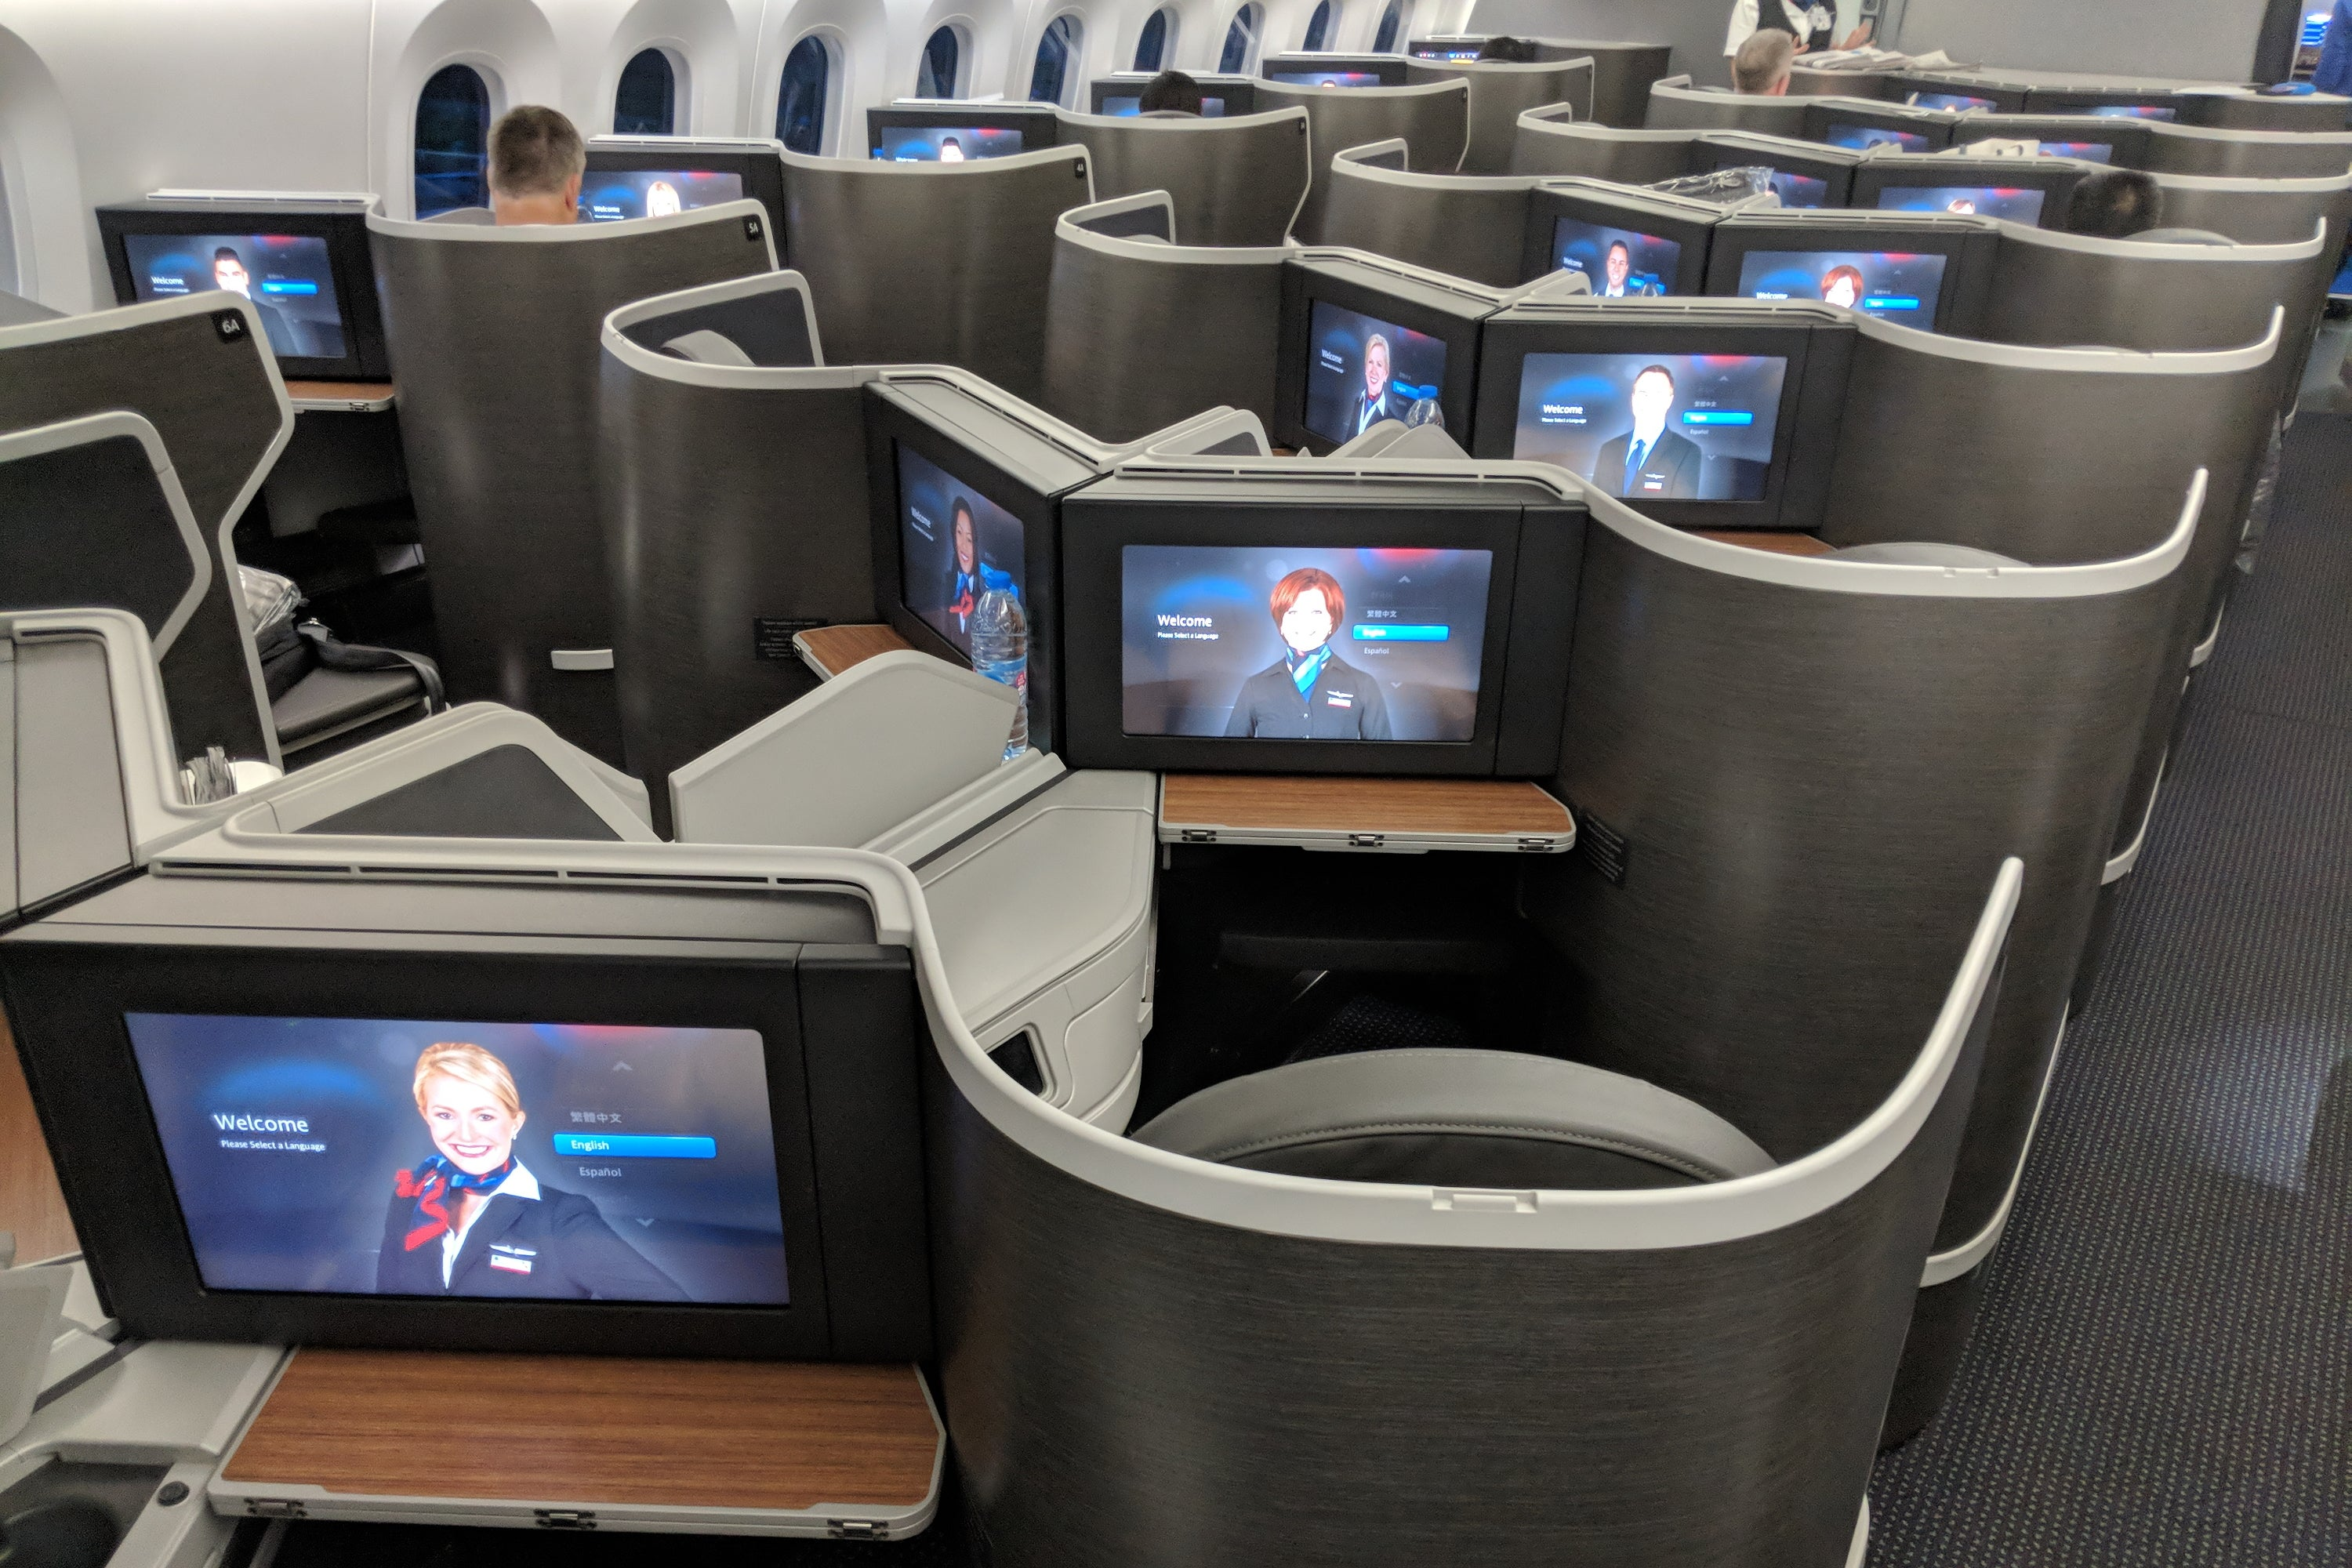 American Airlines now offers free live TV on more than 900 aircraft - The Points Guy